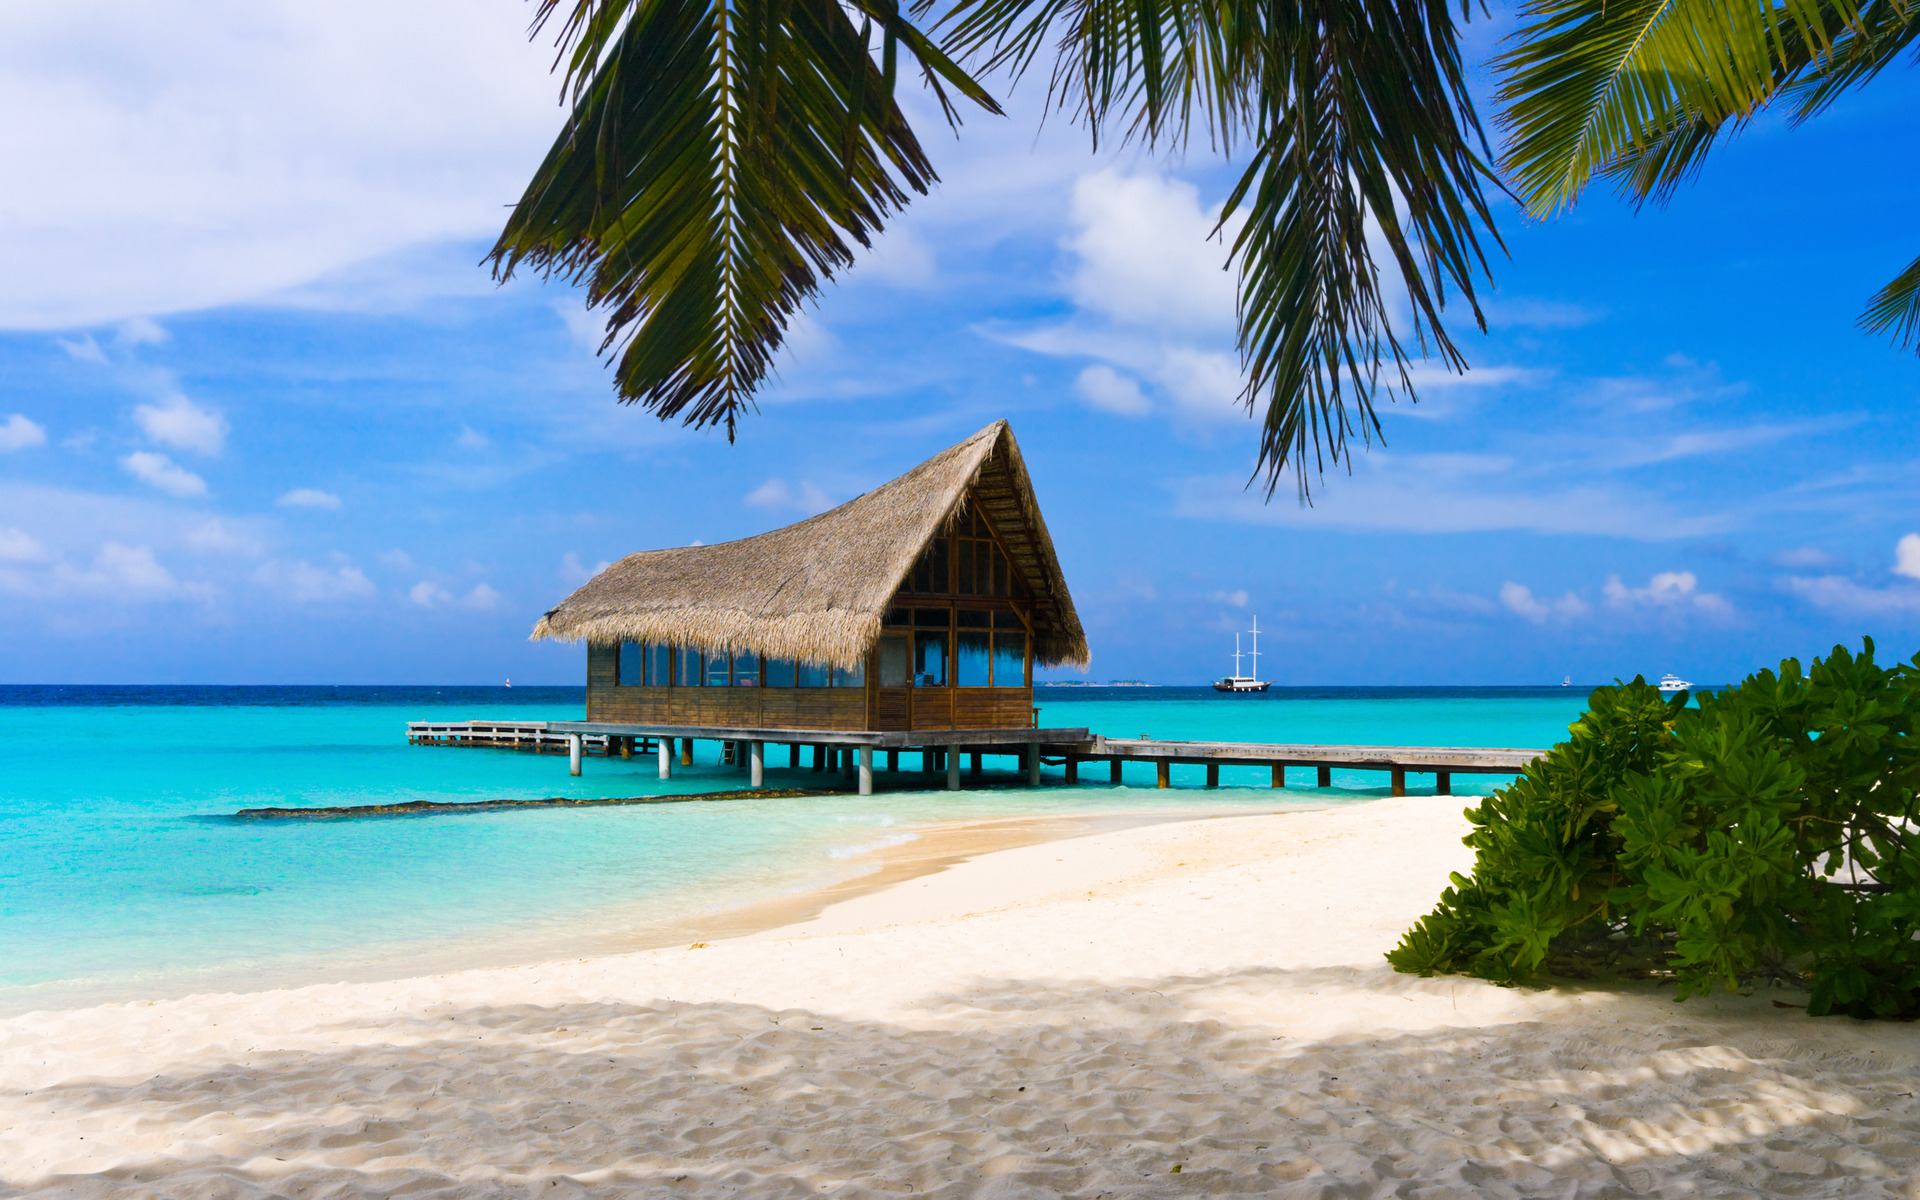 Bahamas Islands HD Wallpaper Background Images 1920x1200